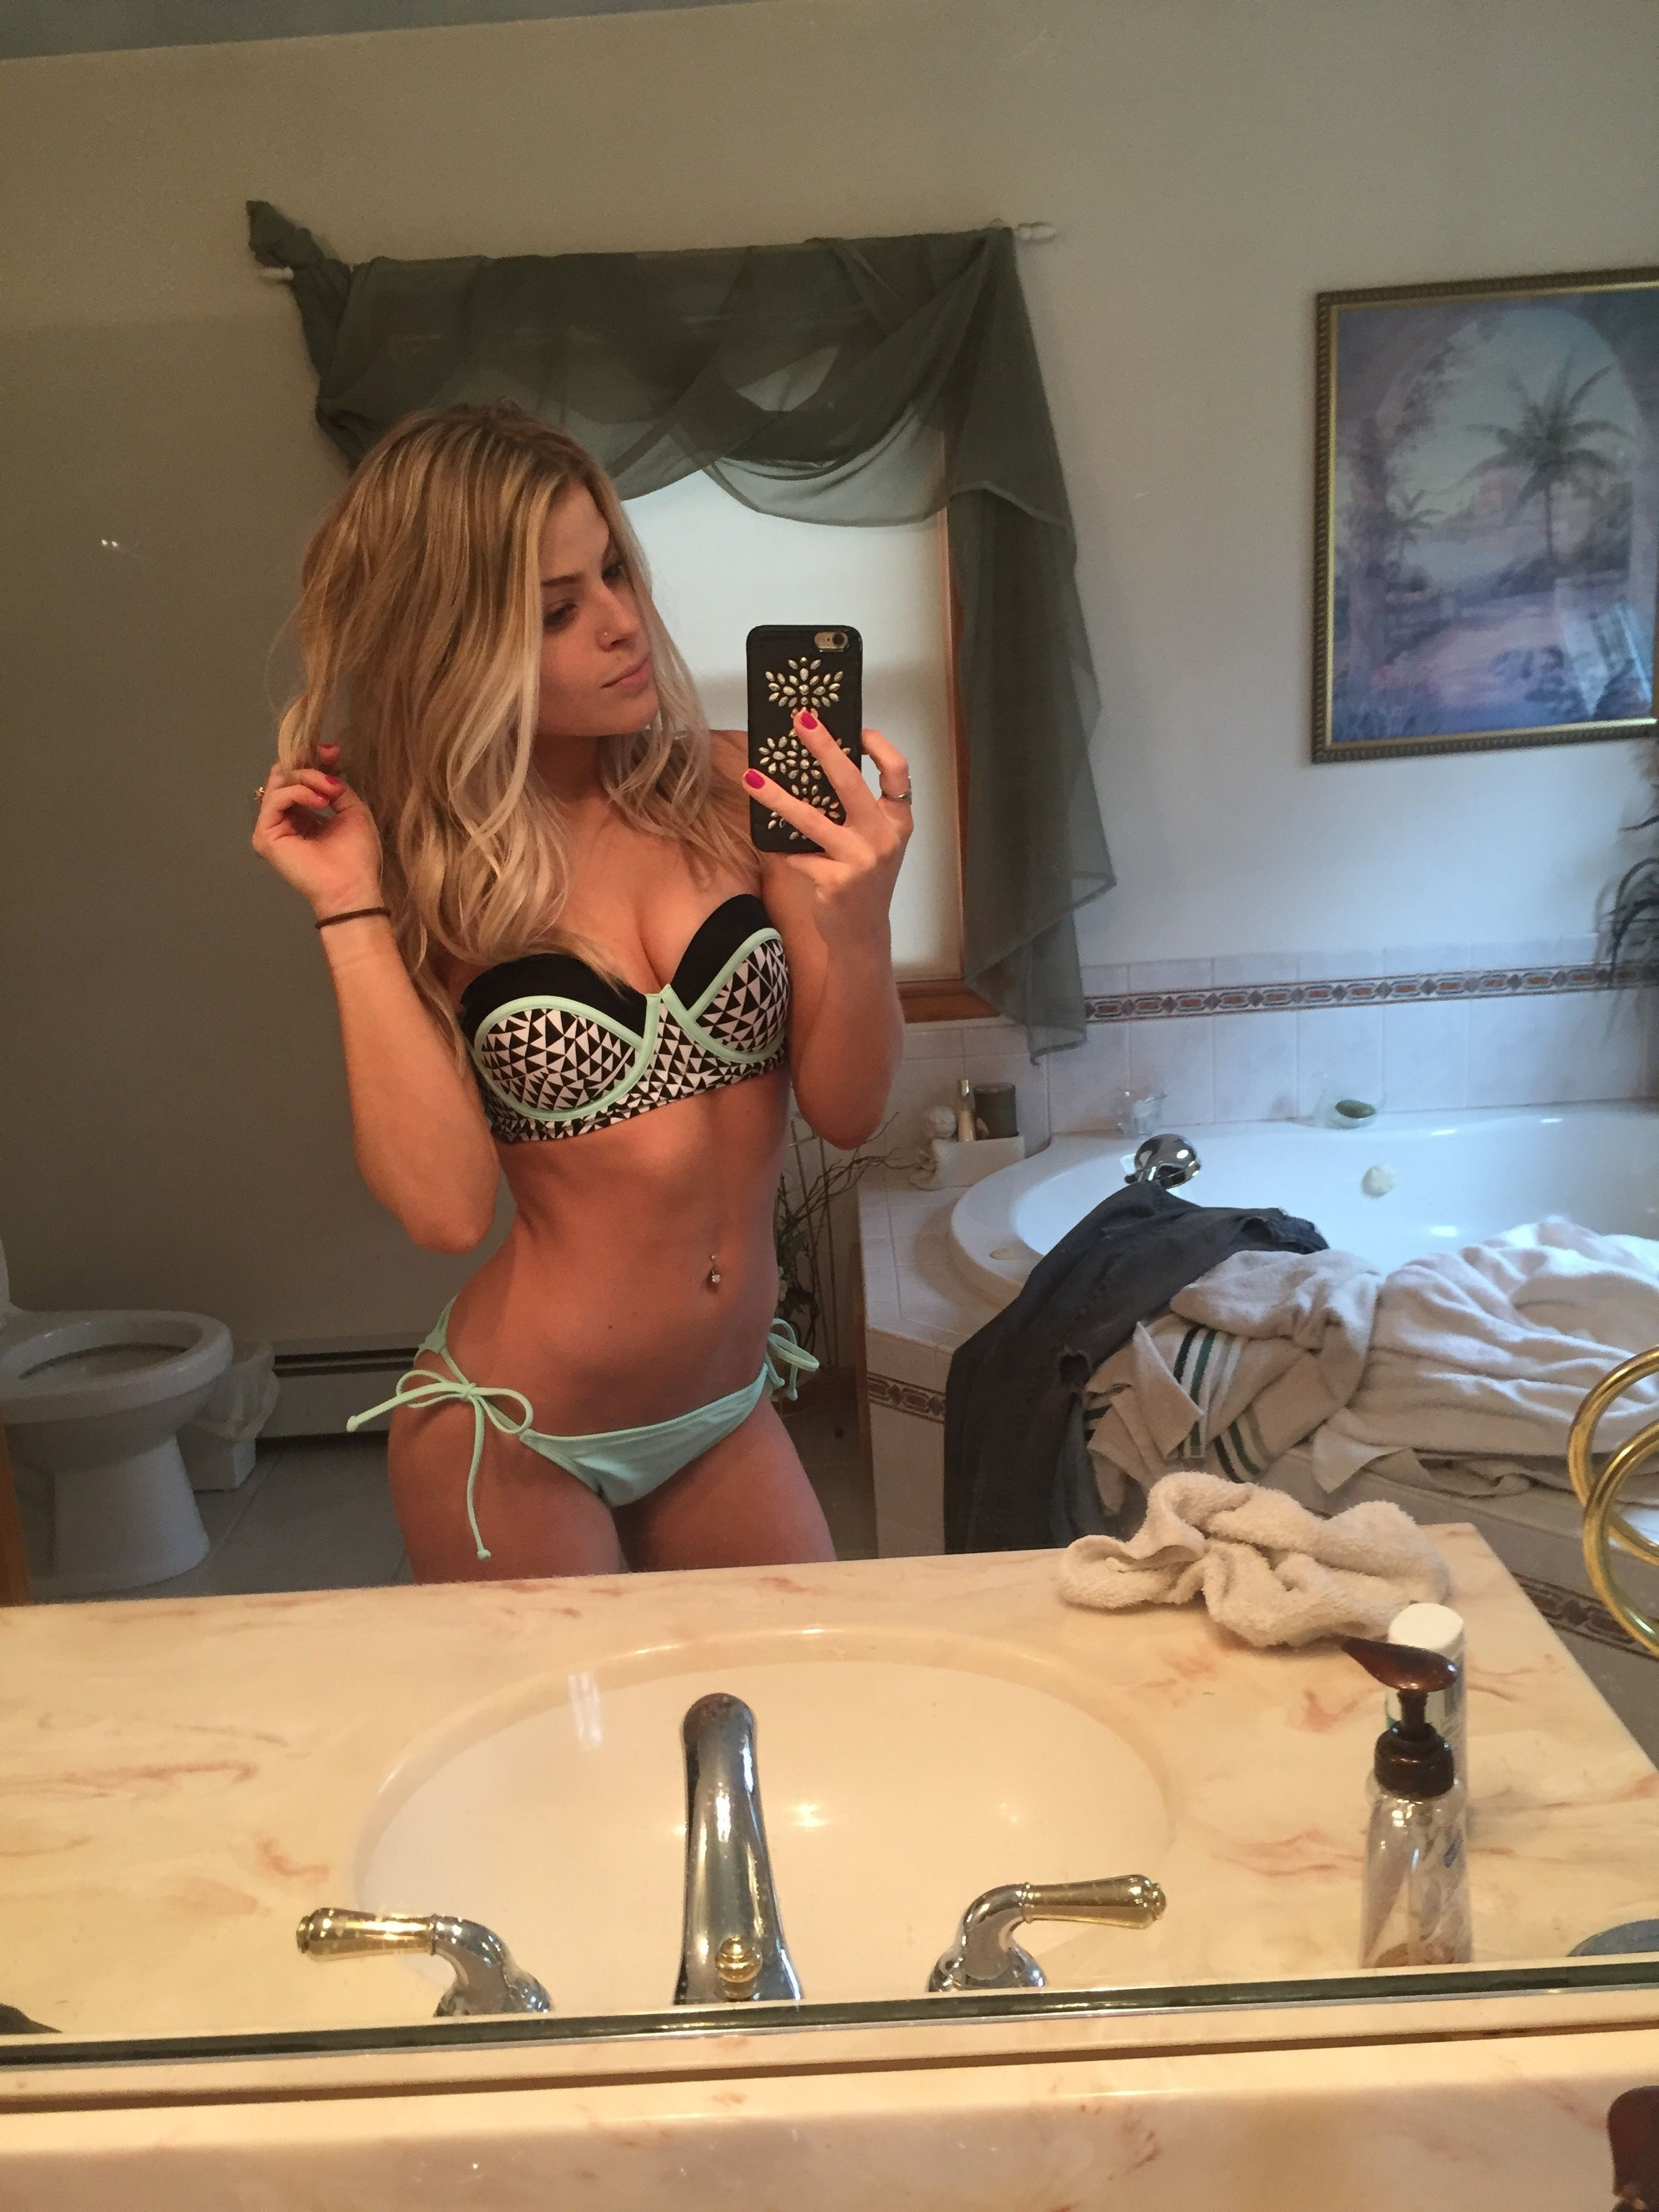 Valerie Pac Leaked Pictures, Tits and Body